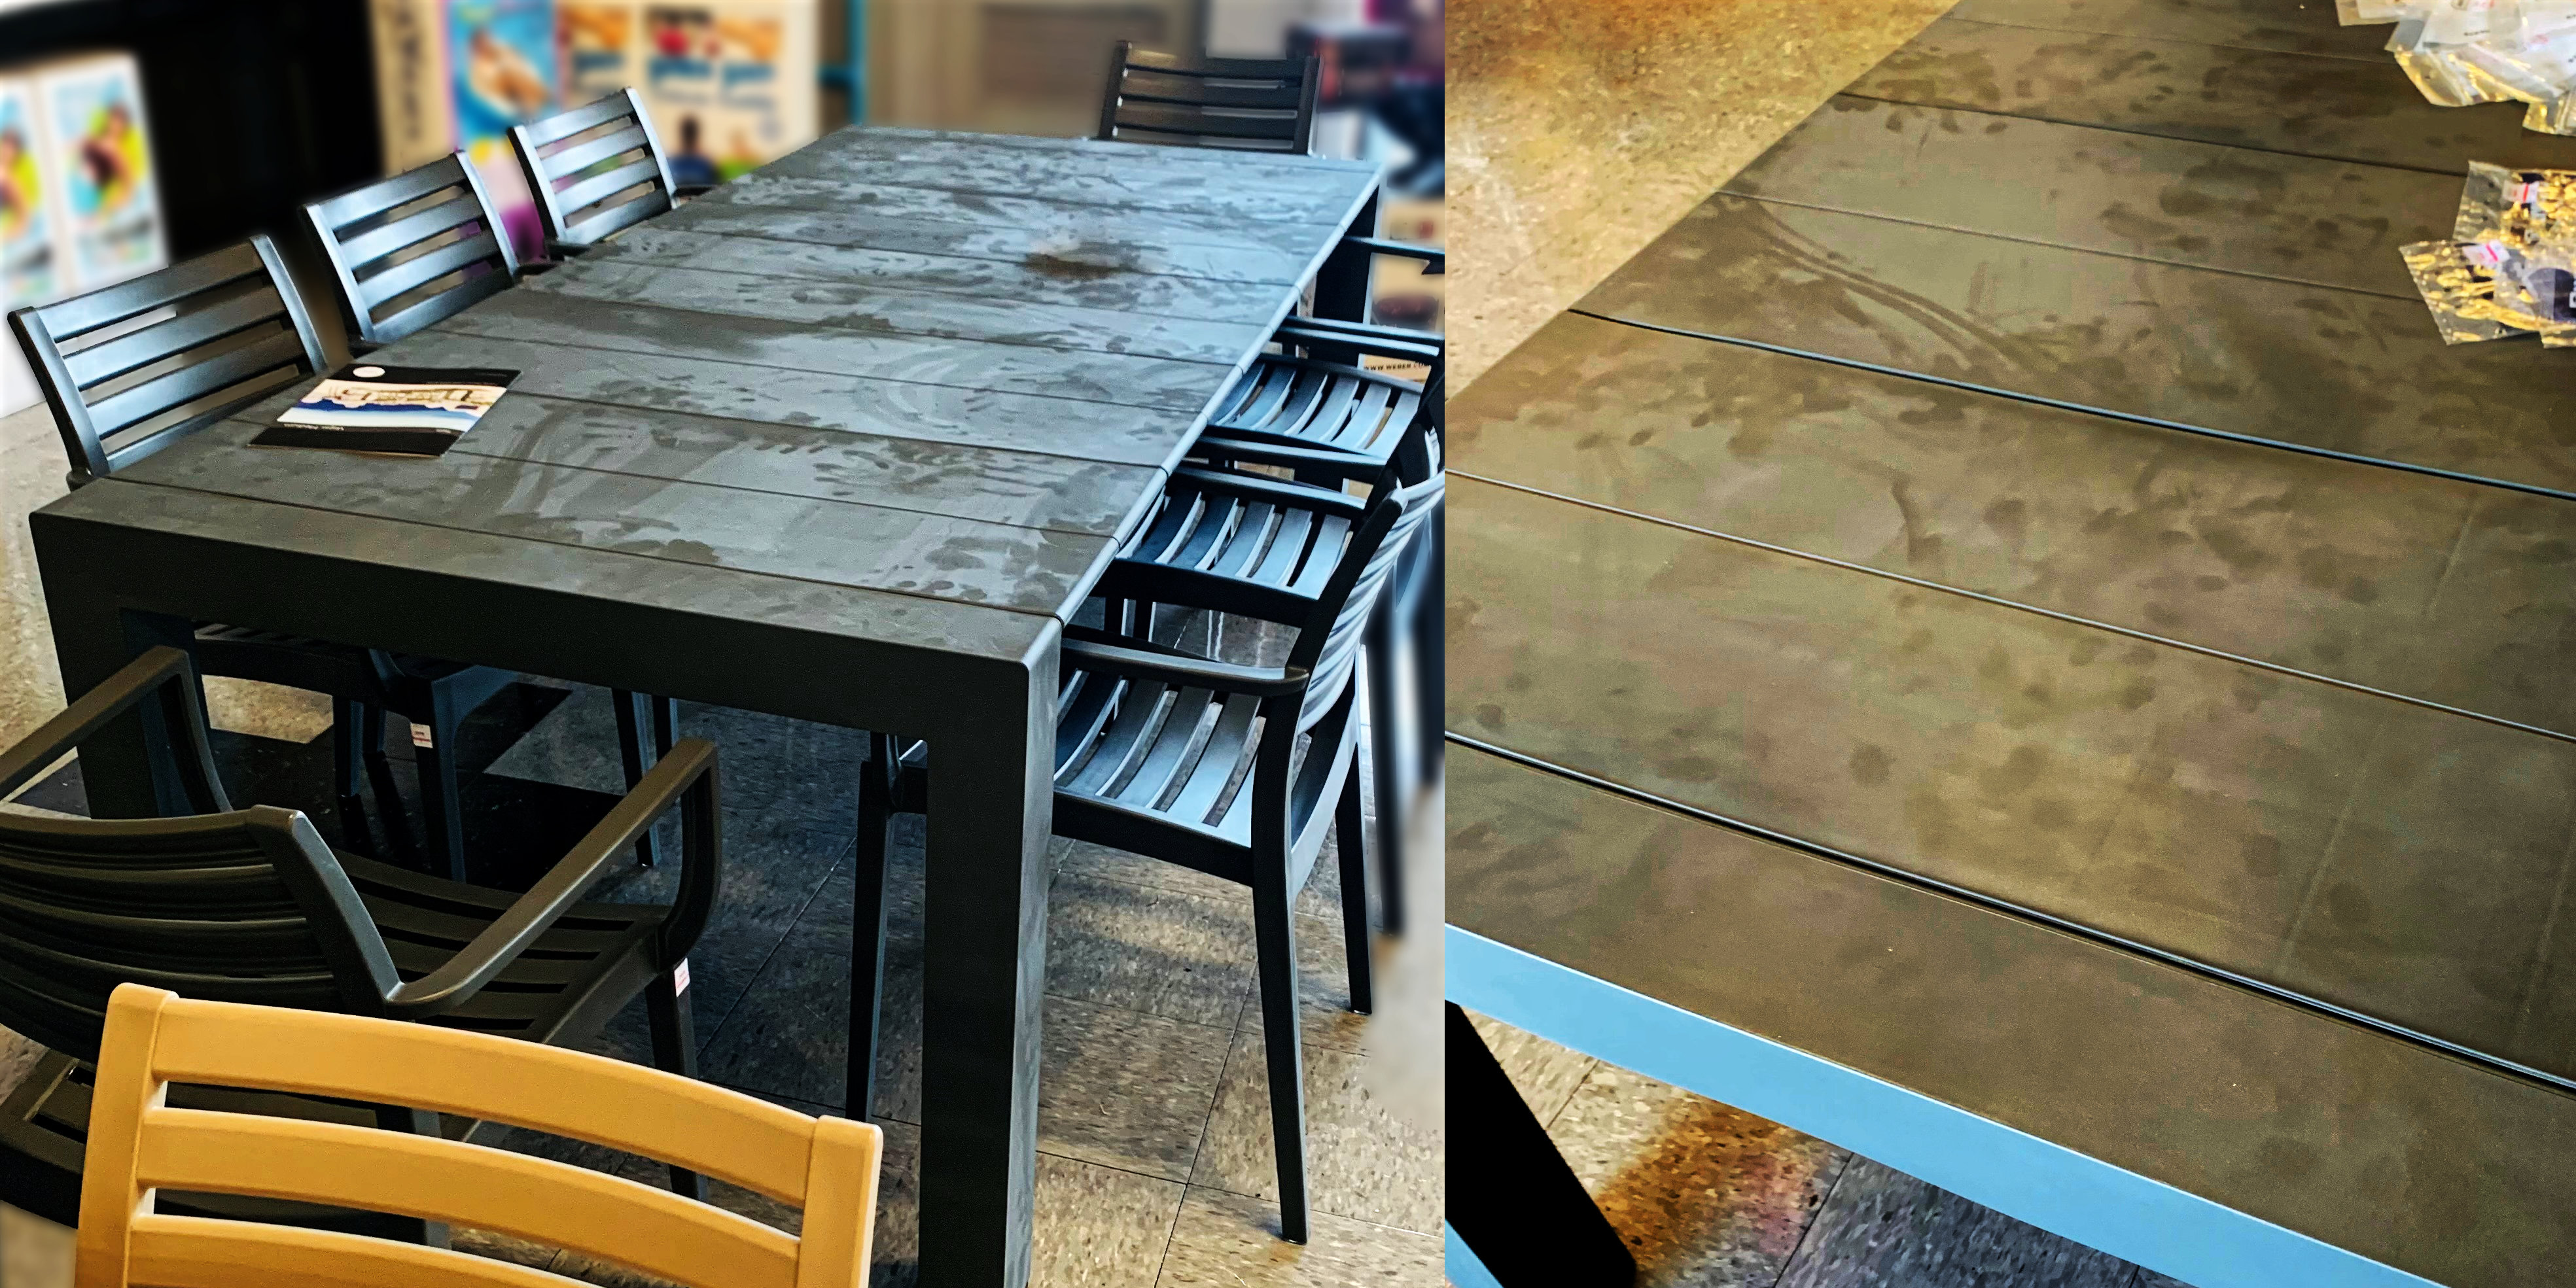 Chalky Residue on Resin Furniture